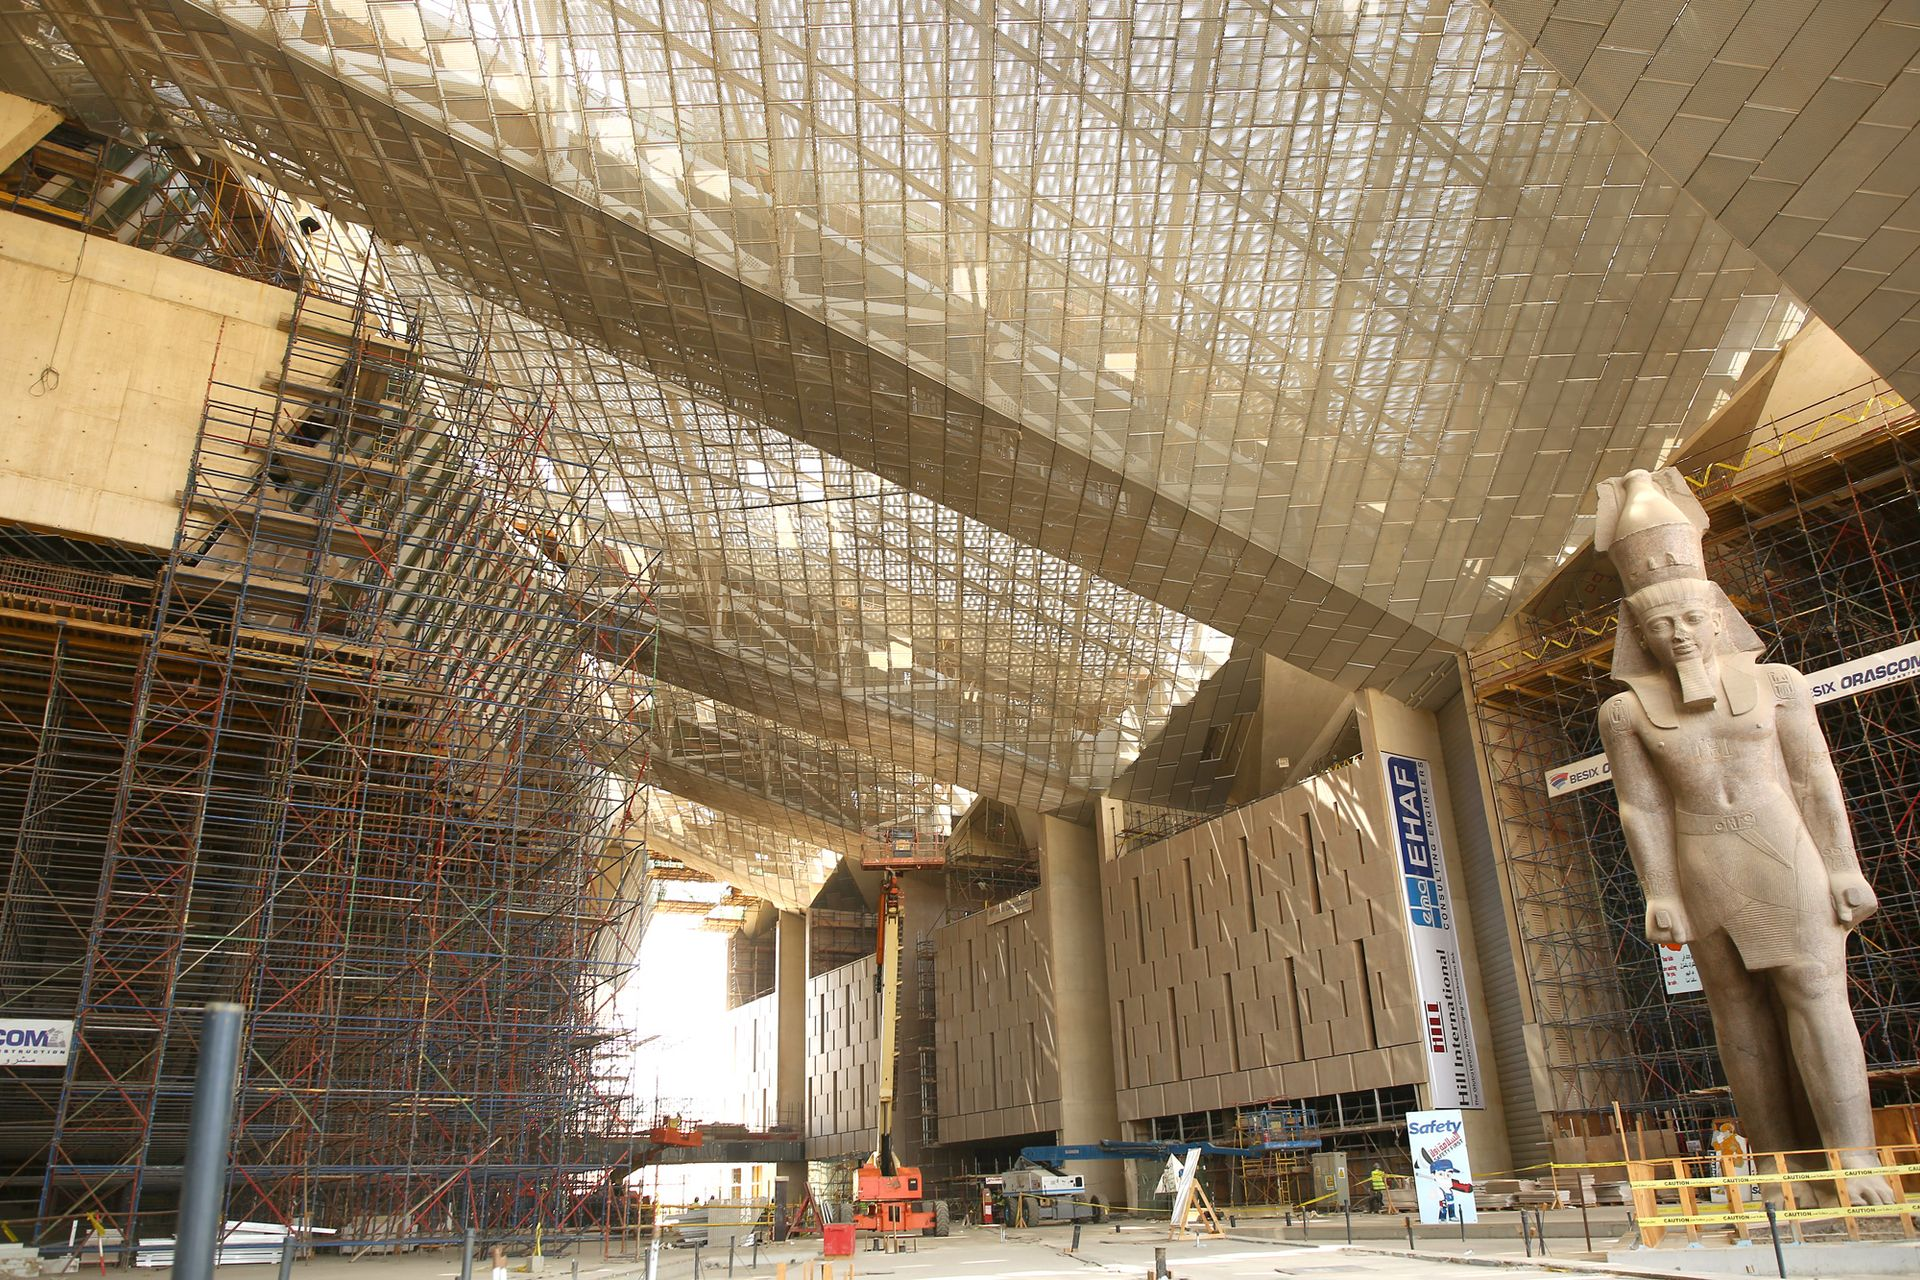 The soaring entrance hall of the Grand Egyptian Museum, where a 12m-tall, 83-ton granite statue of King Ramses II is already in place